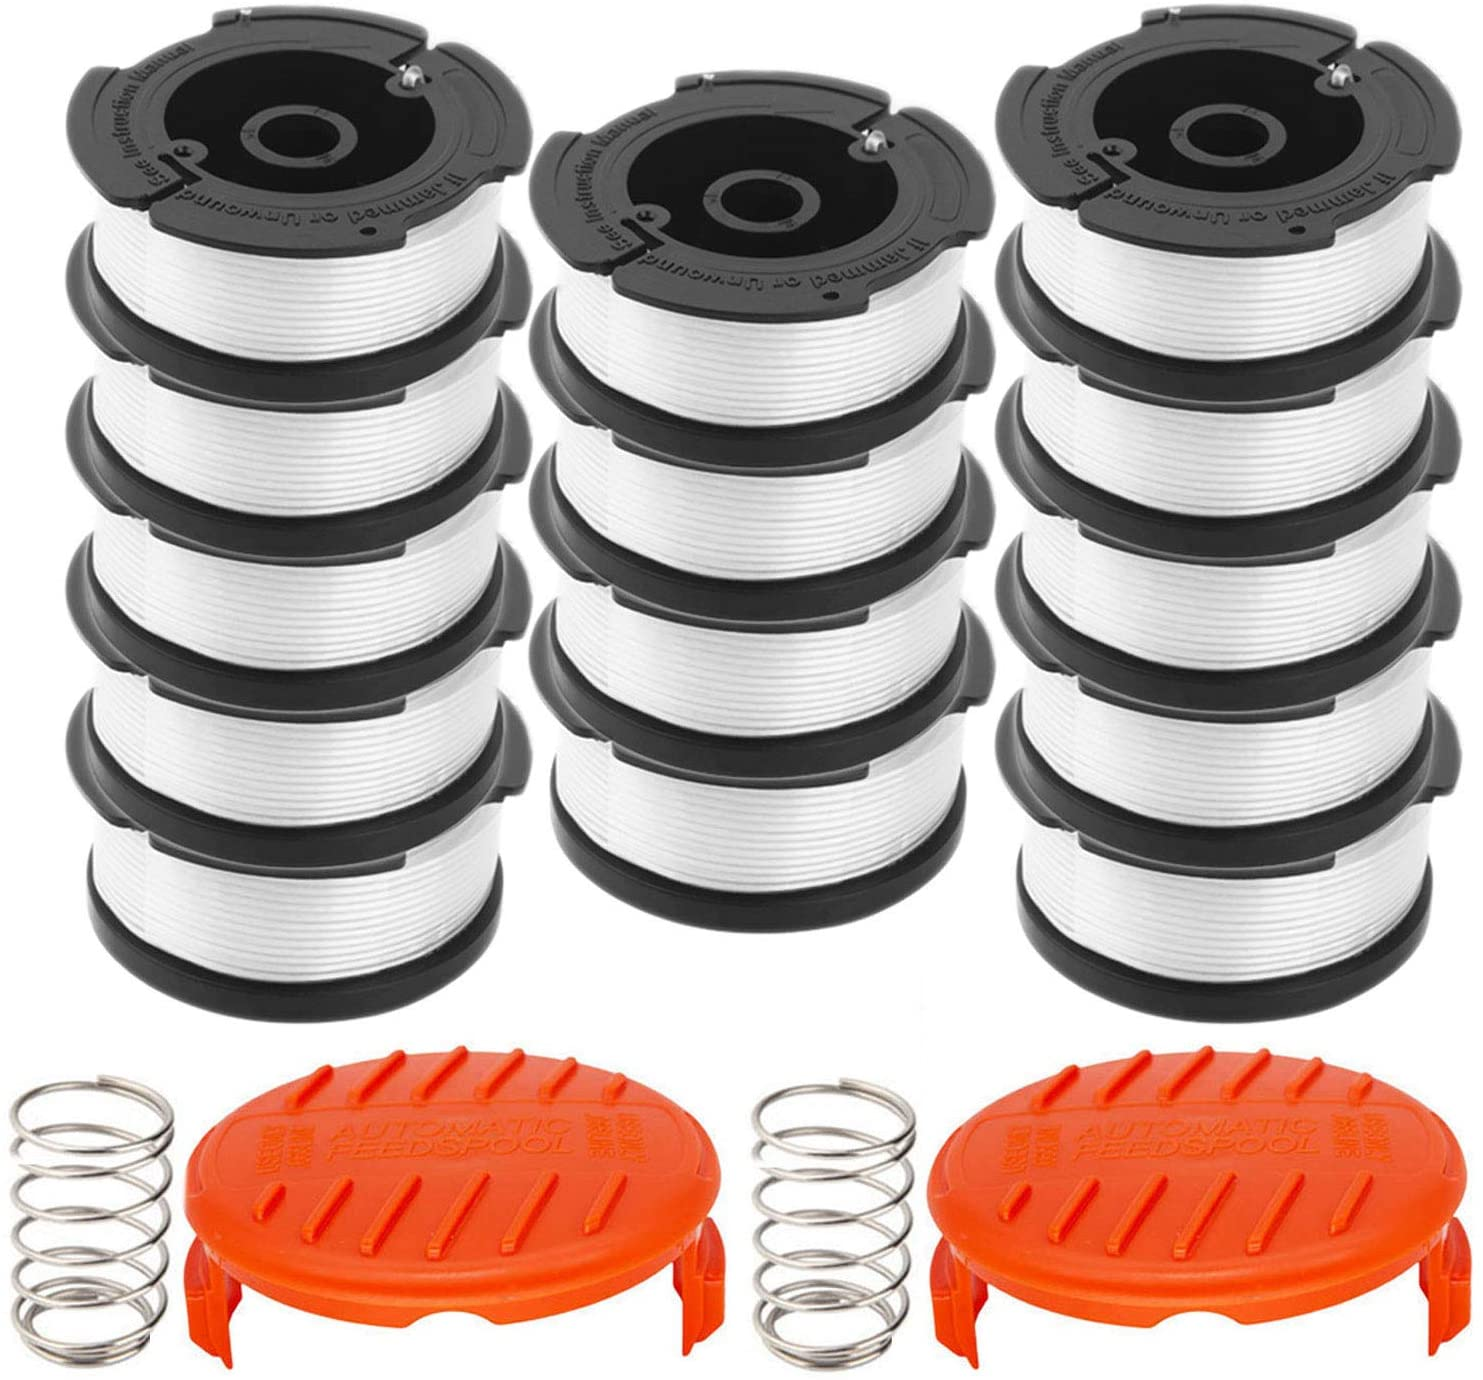 Compatible with Black /& Decker AF-100//Replacement Autofeed Spool 30ft 0.065 3-Pack 3-Pack or 6-Pack Optional GARDENOK Line String Trimmer Replacement Spool